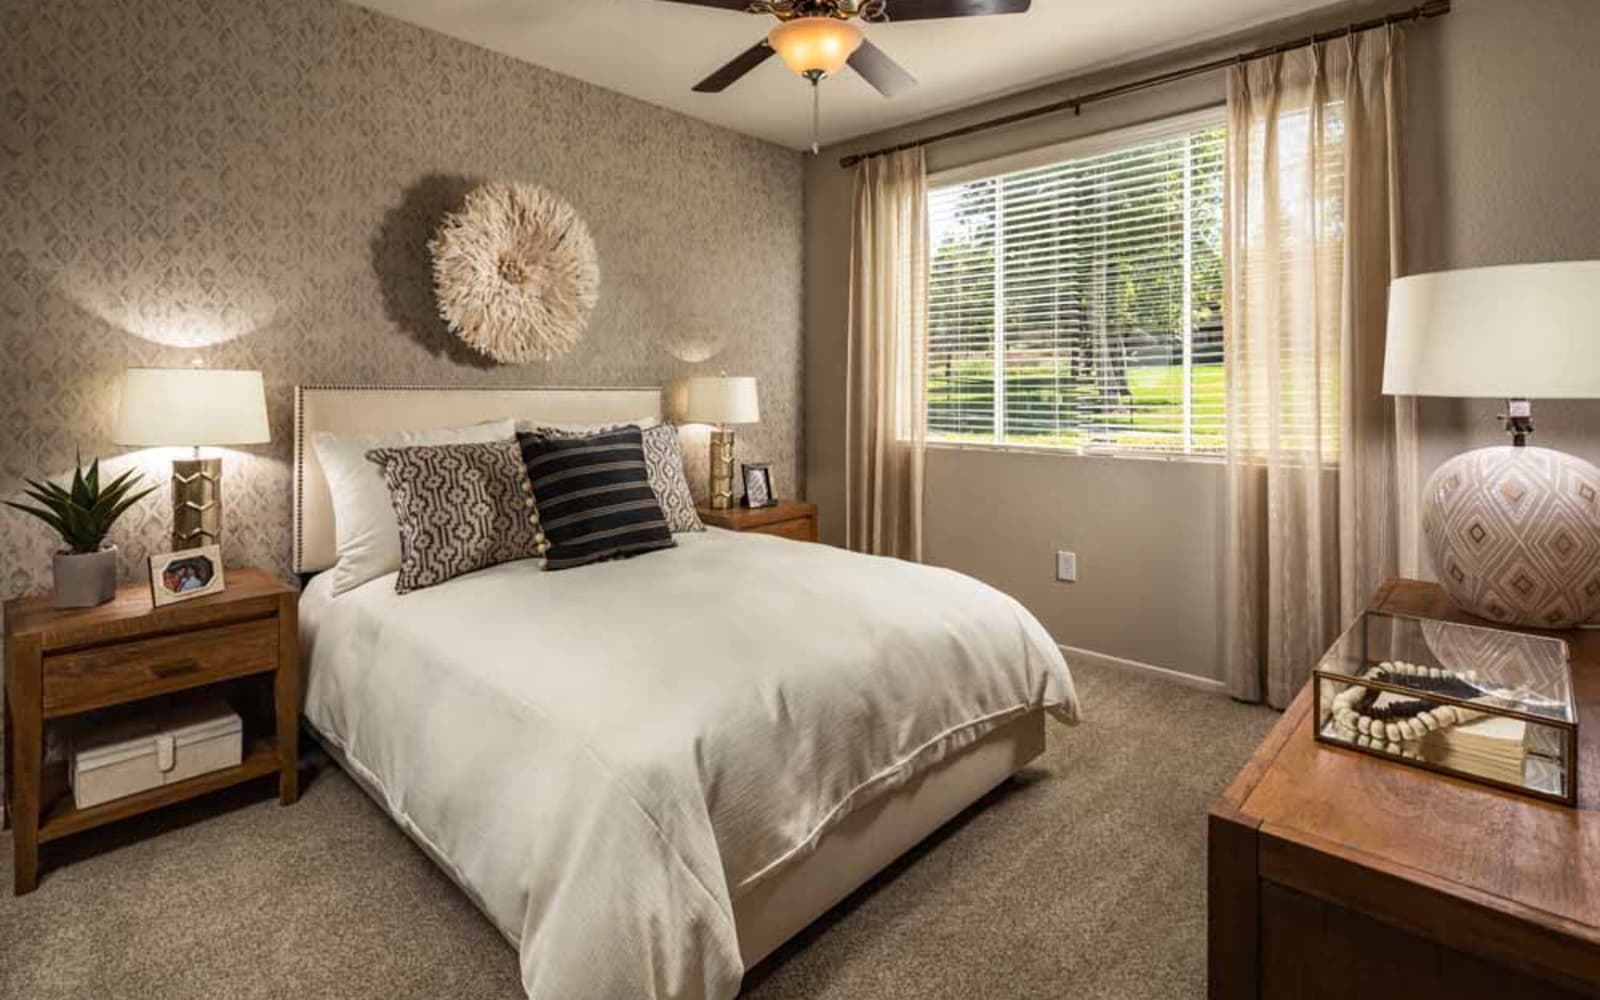 A spacious master bedroom at Colonnade at Sycamore Highlands in Riverside, California